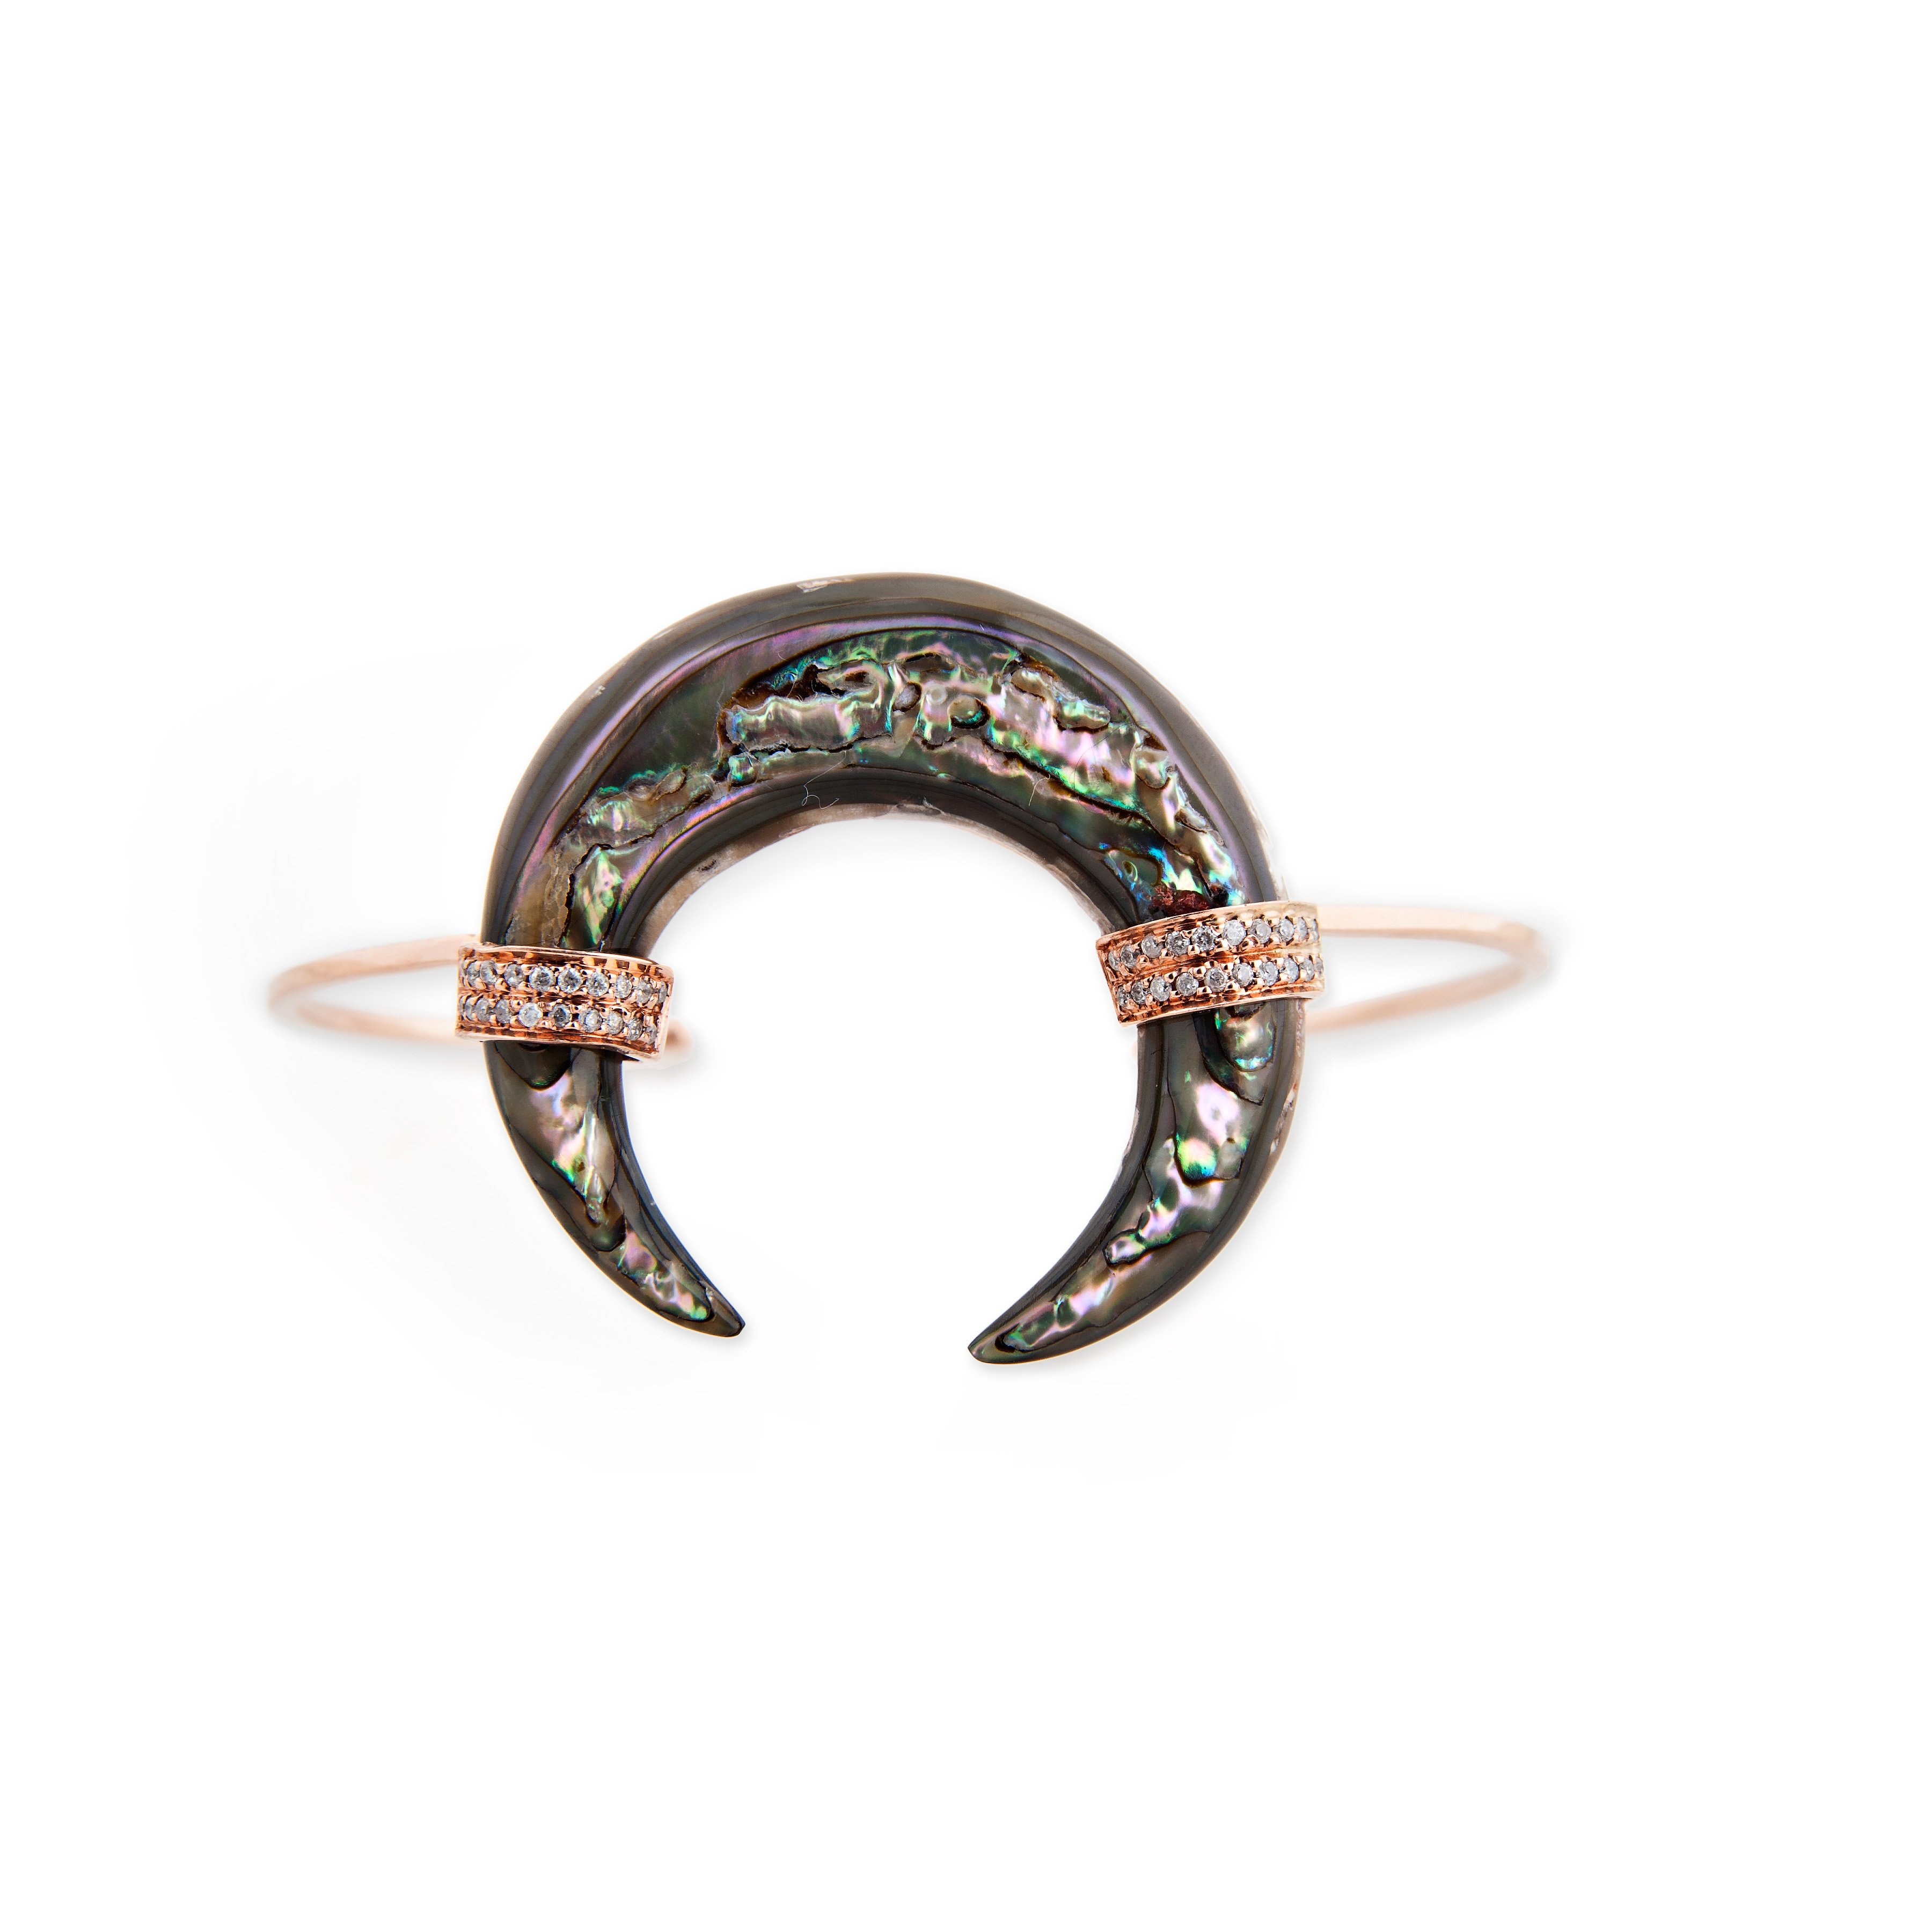 Image of Abalone Double Horn Cuff